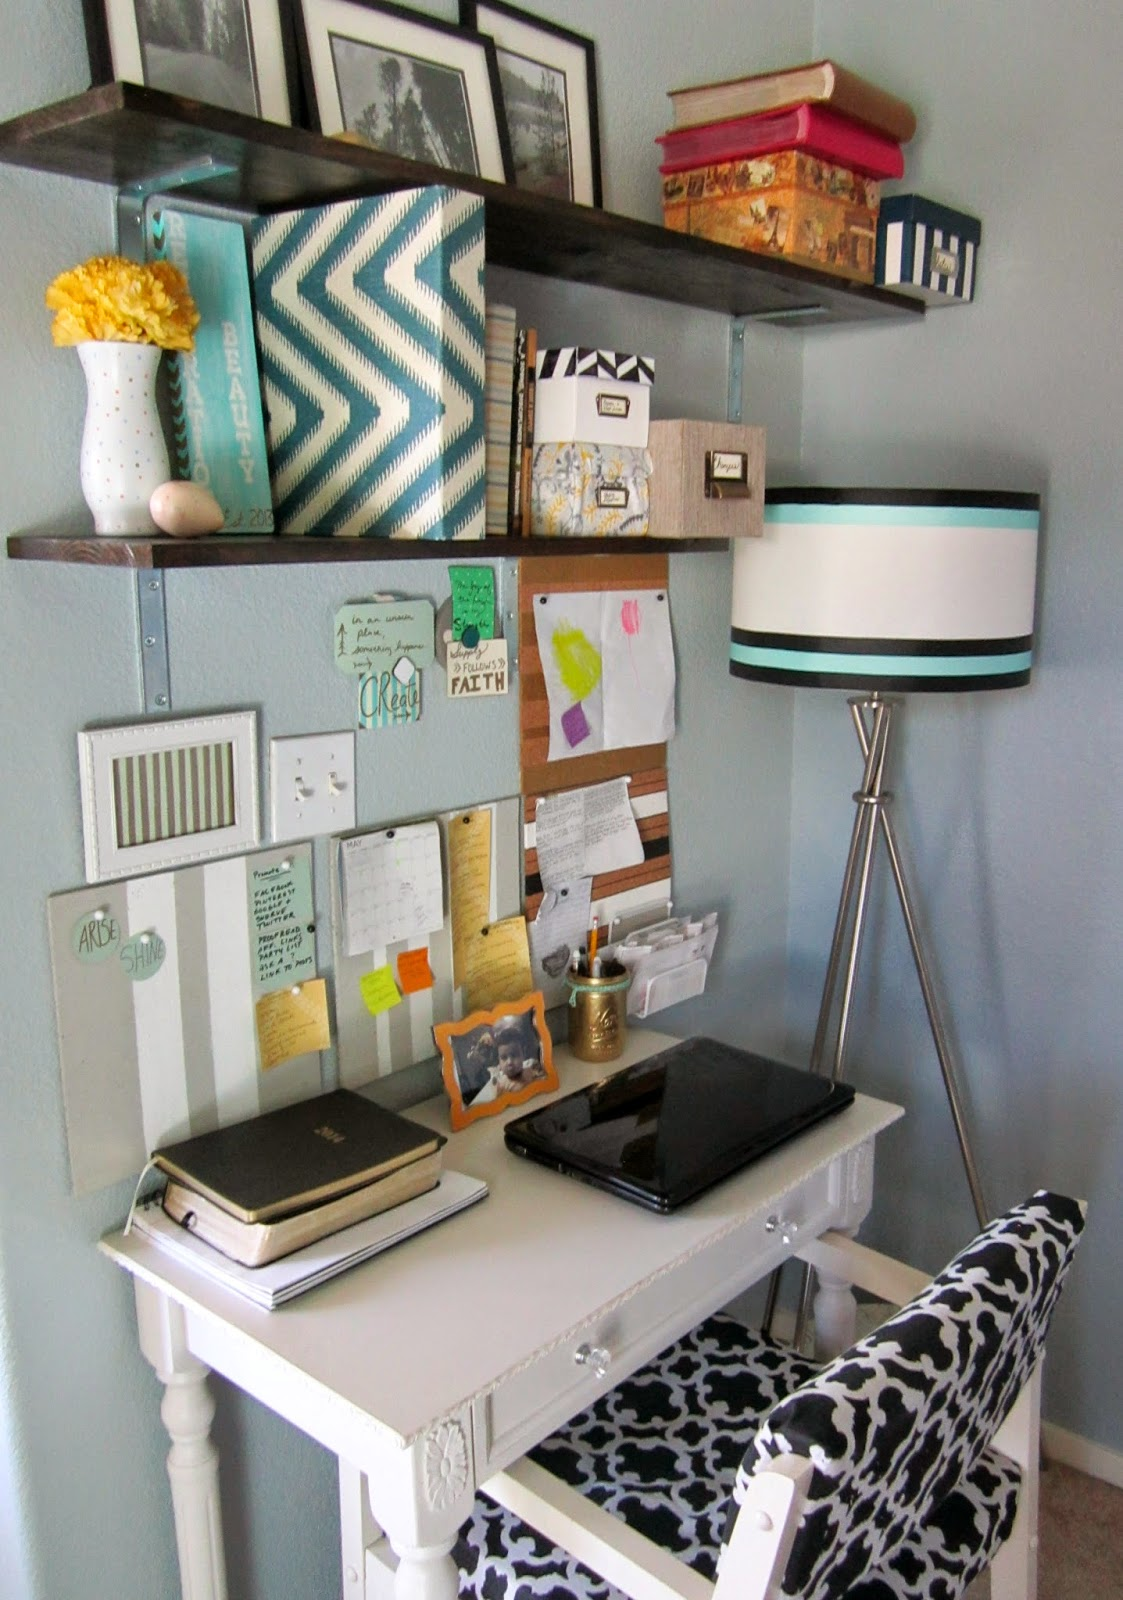 How To Organize A Small Office/Work Space {Tips U0026 Tricks}